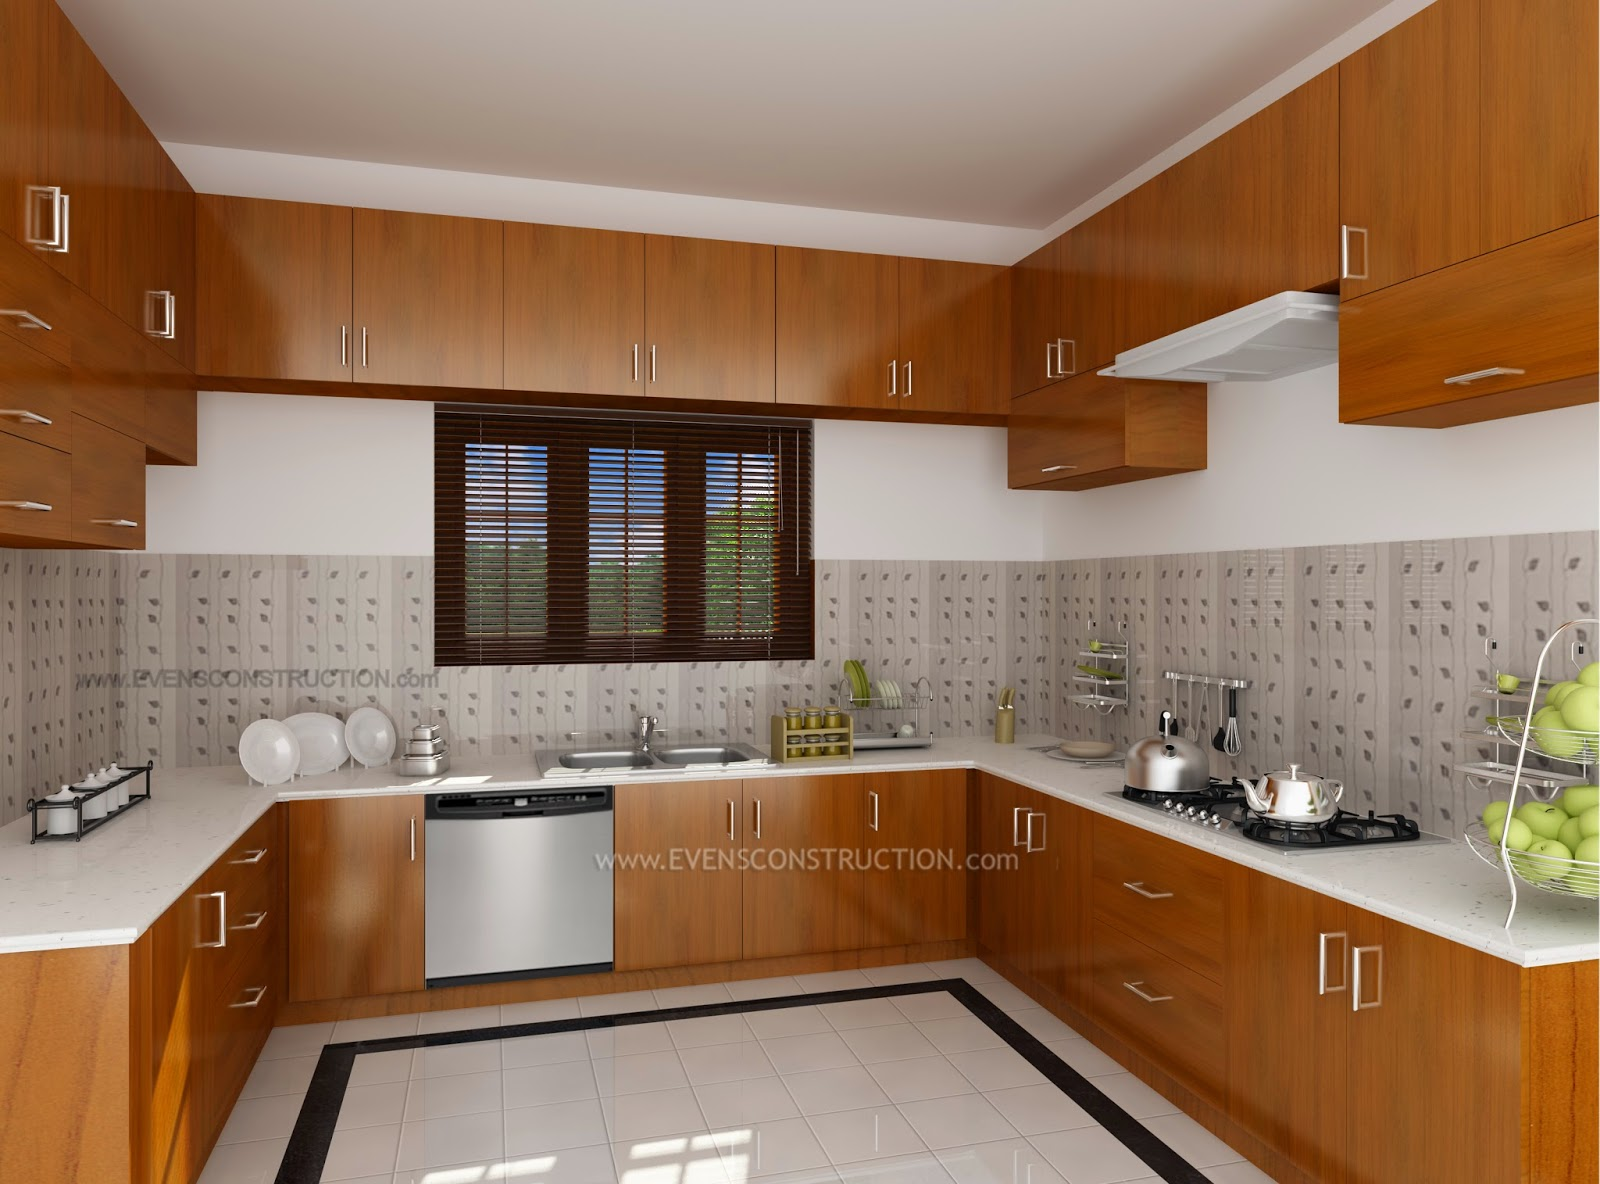 Evens construction pvt ltd october 2014 for New style kitchen images